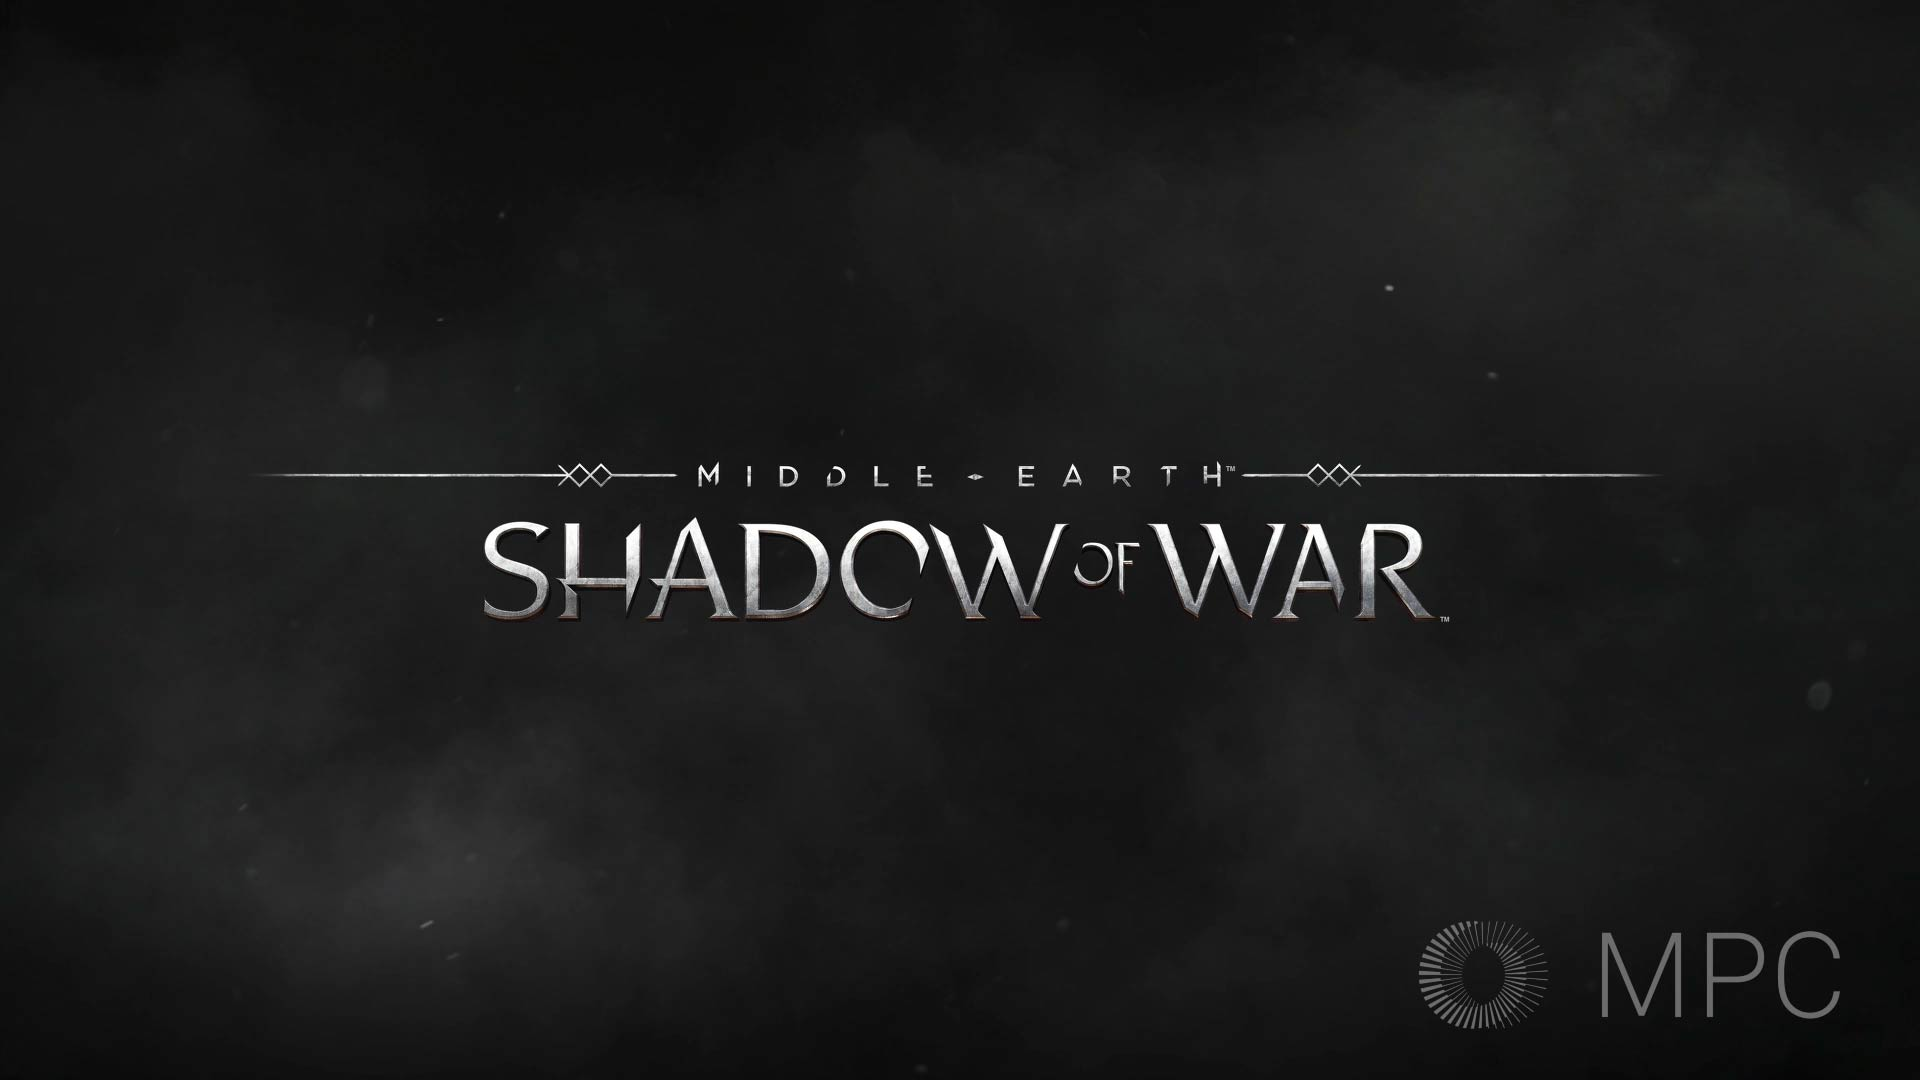 SHADOW OF WAR_TRAILER_04.jpg